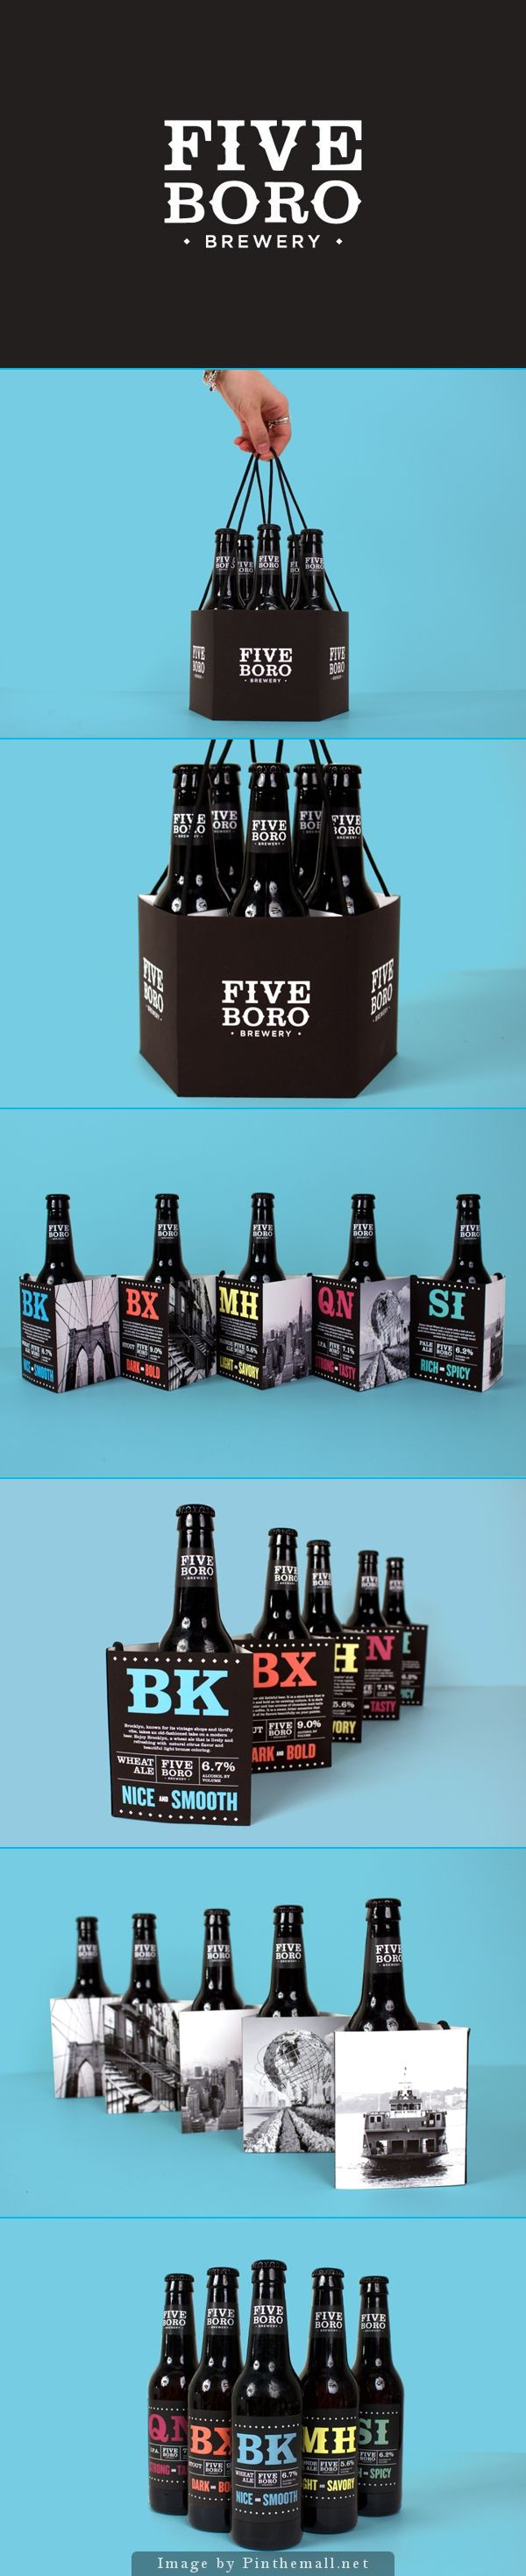 Five Boro Brewery by Laura Toffolo